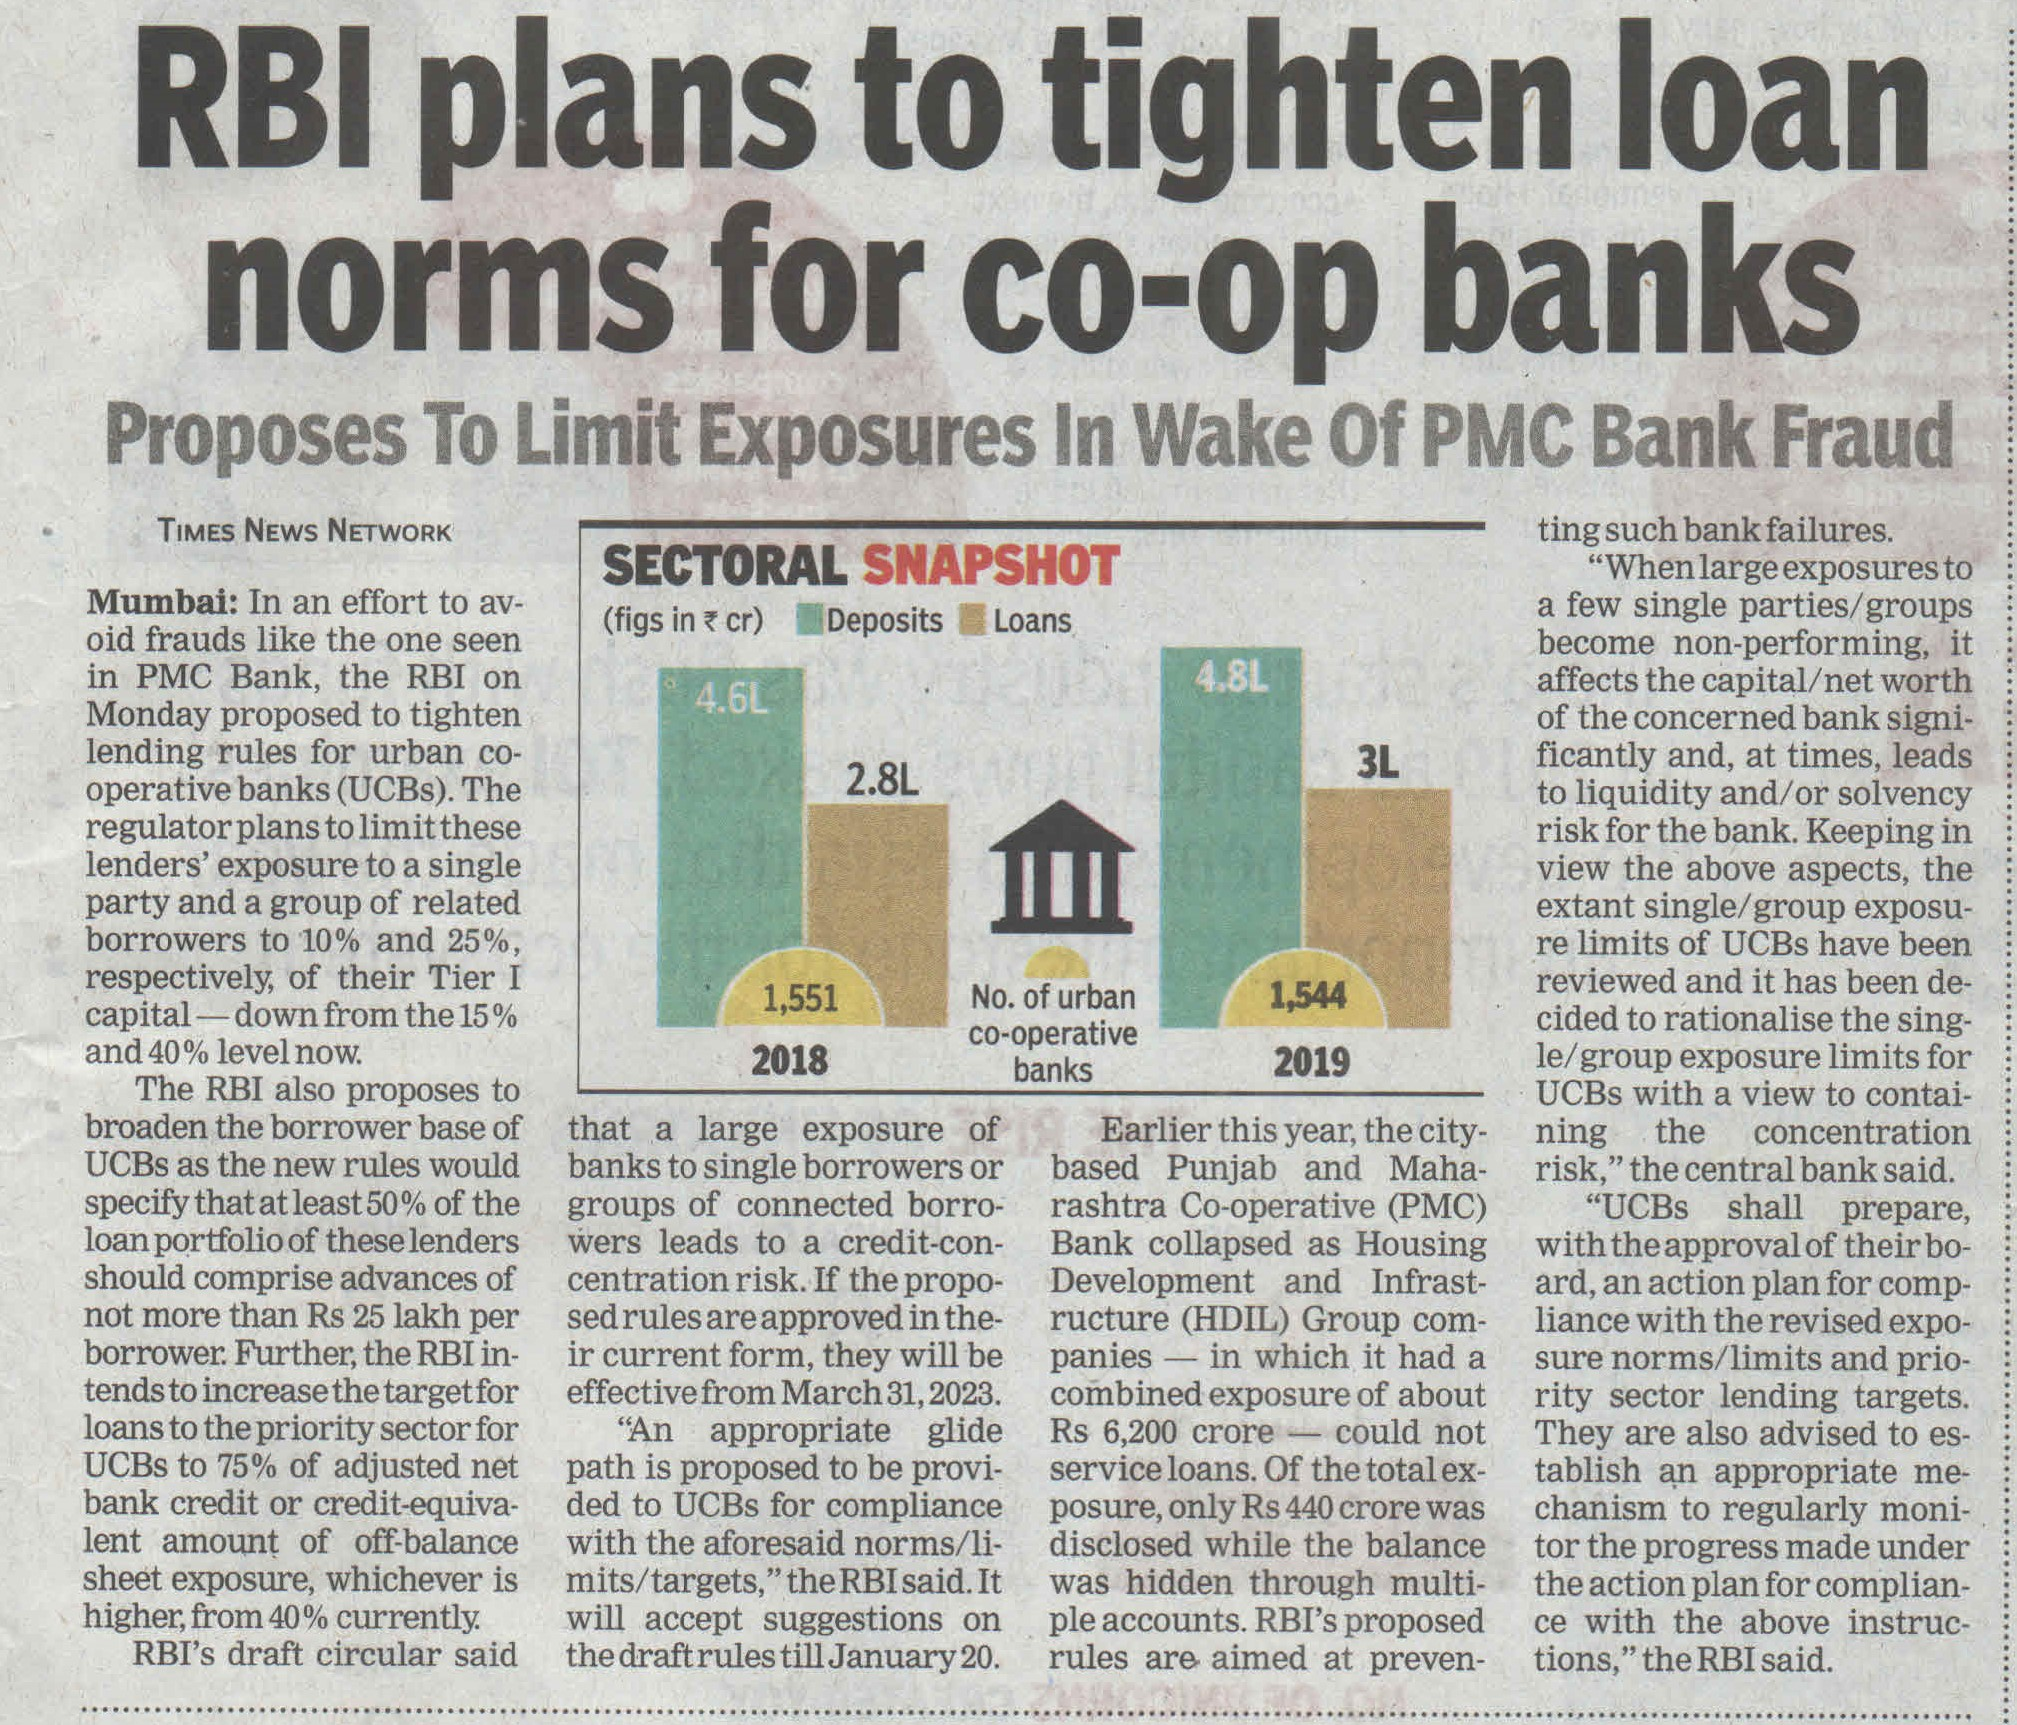 RBI plans to tighten loan normsfor co-op banks